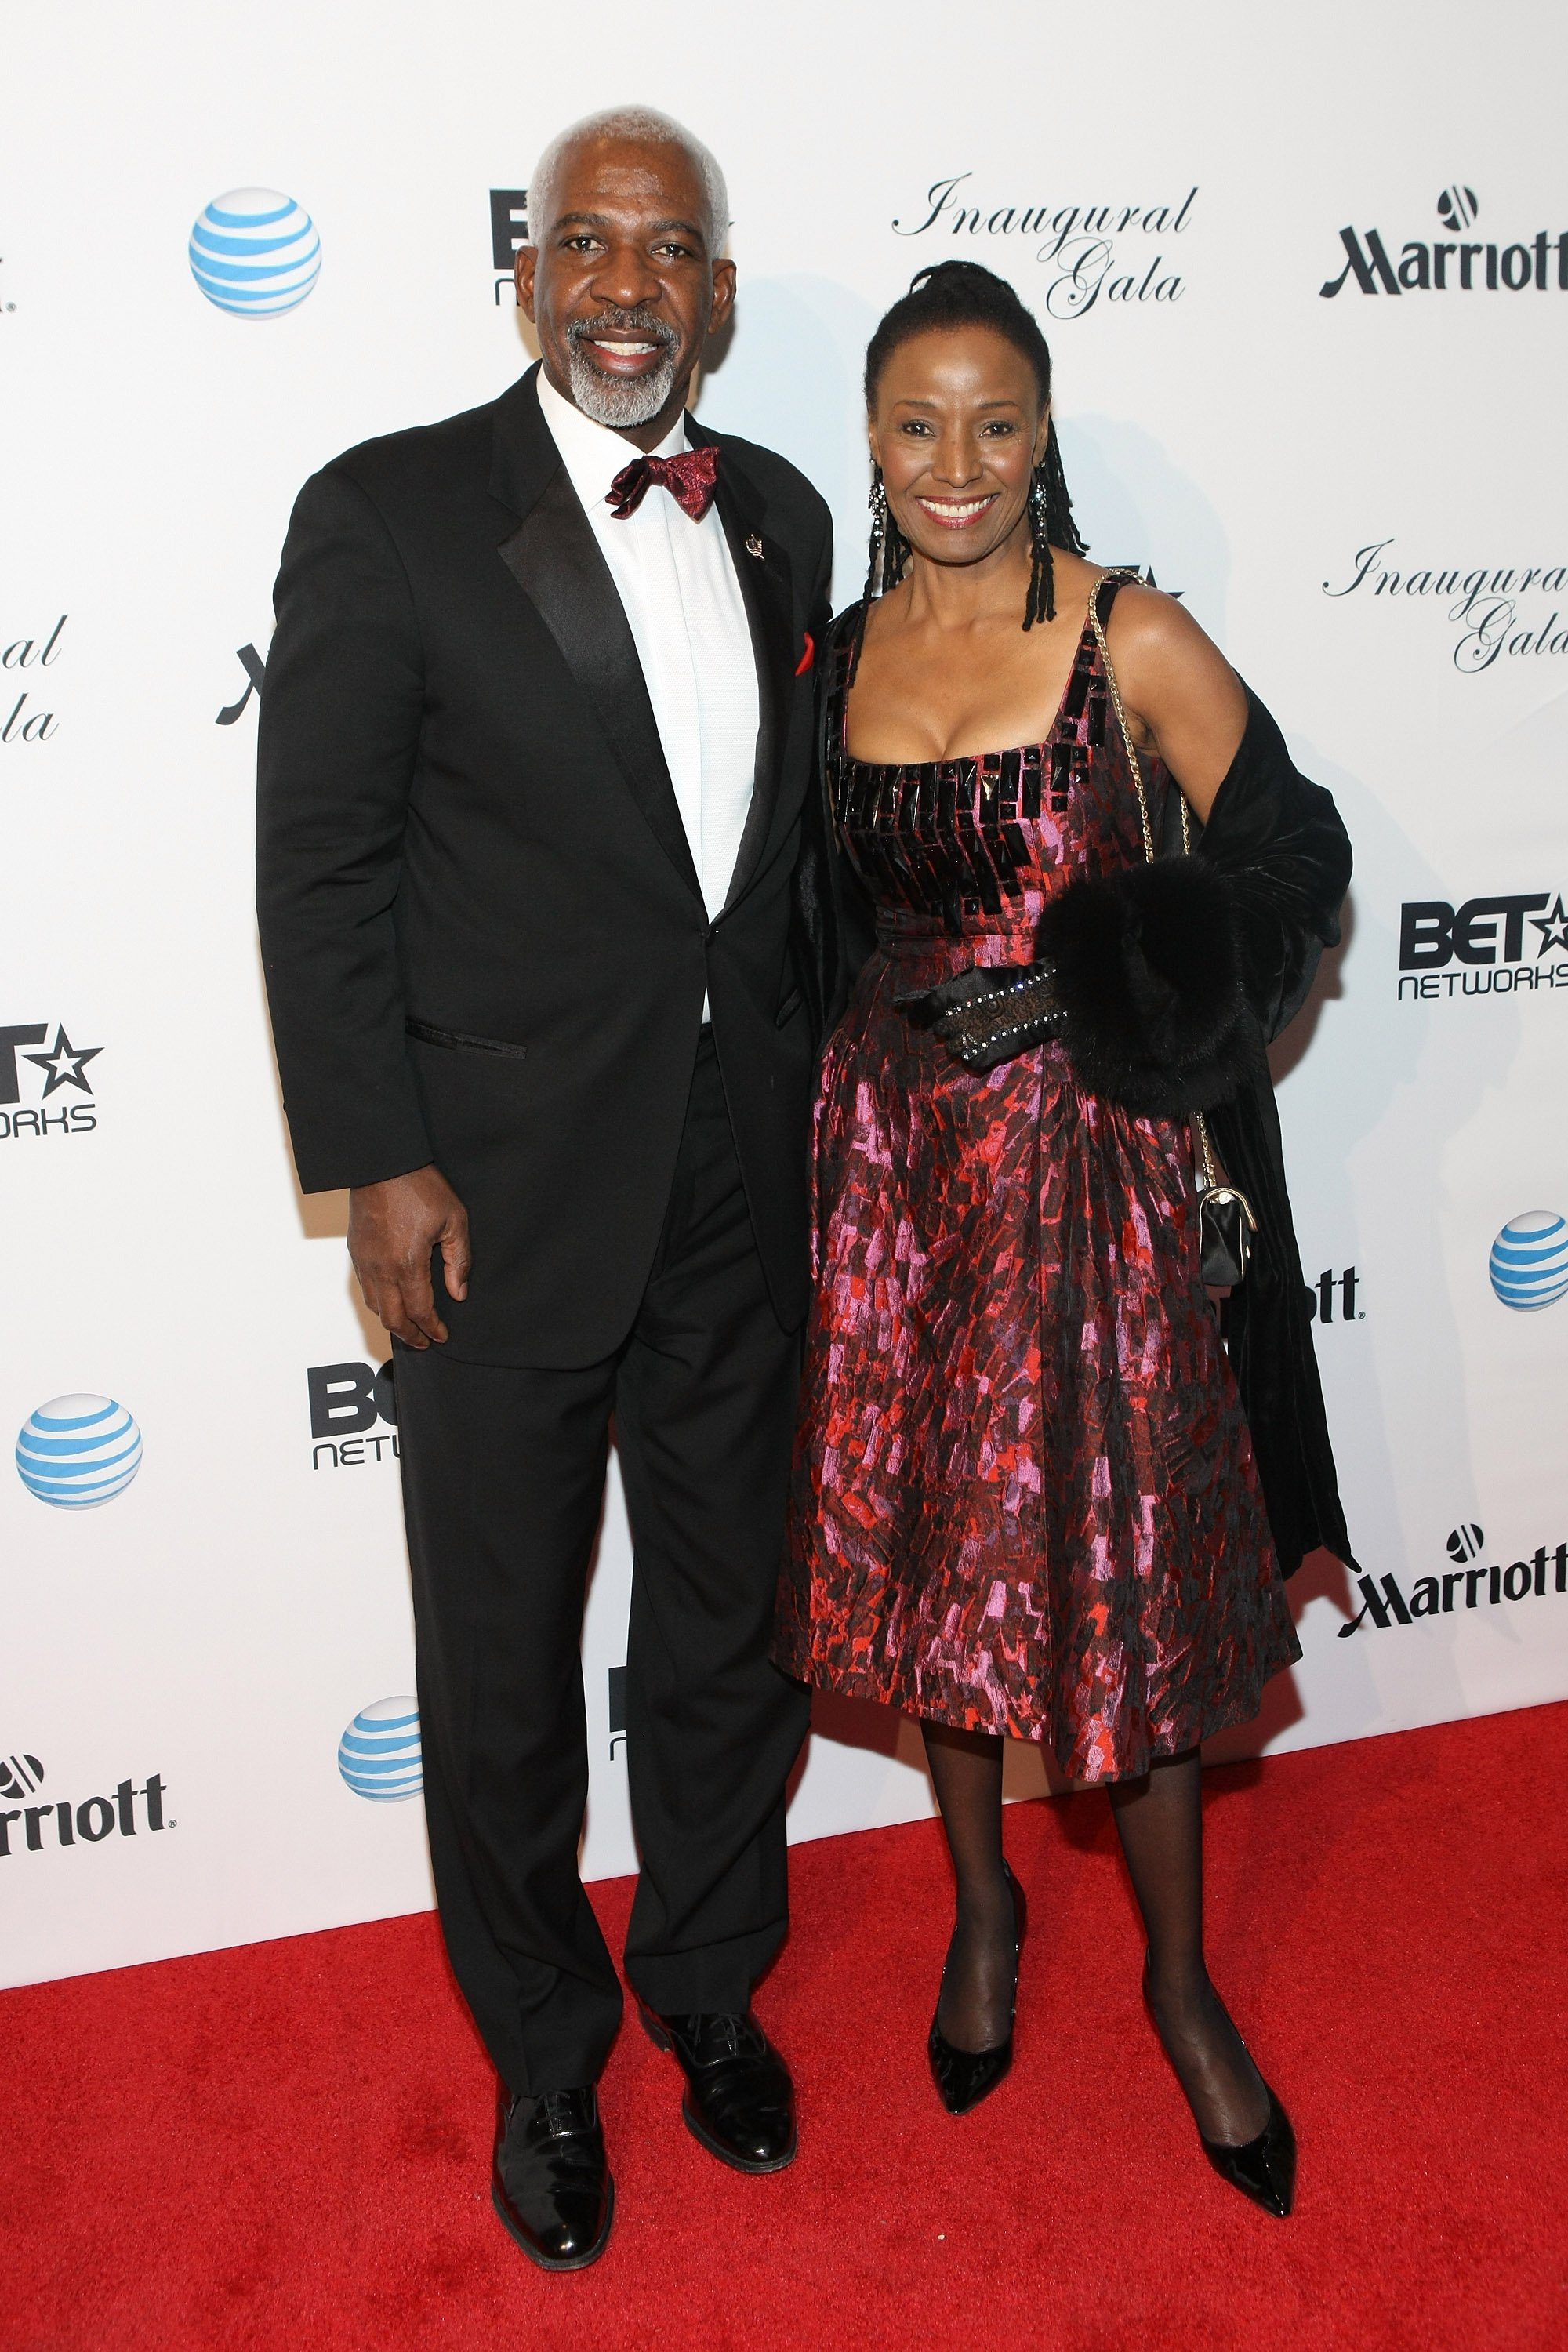 Dan Gasby and B. Smith at the Inaugural Ball hosted by BET Networks  in 2013 | Getty Images